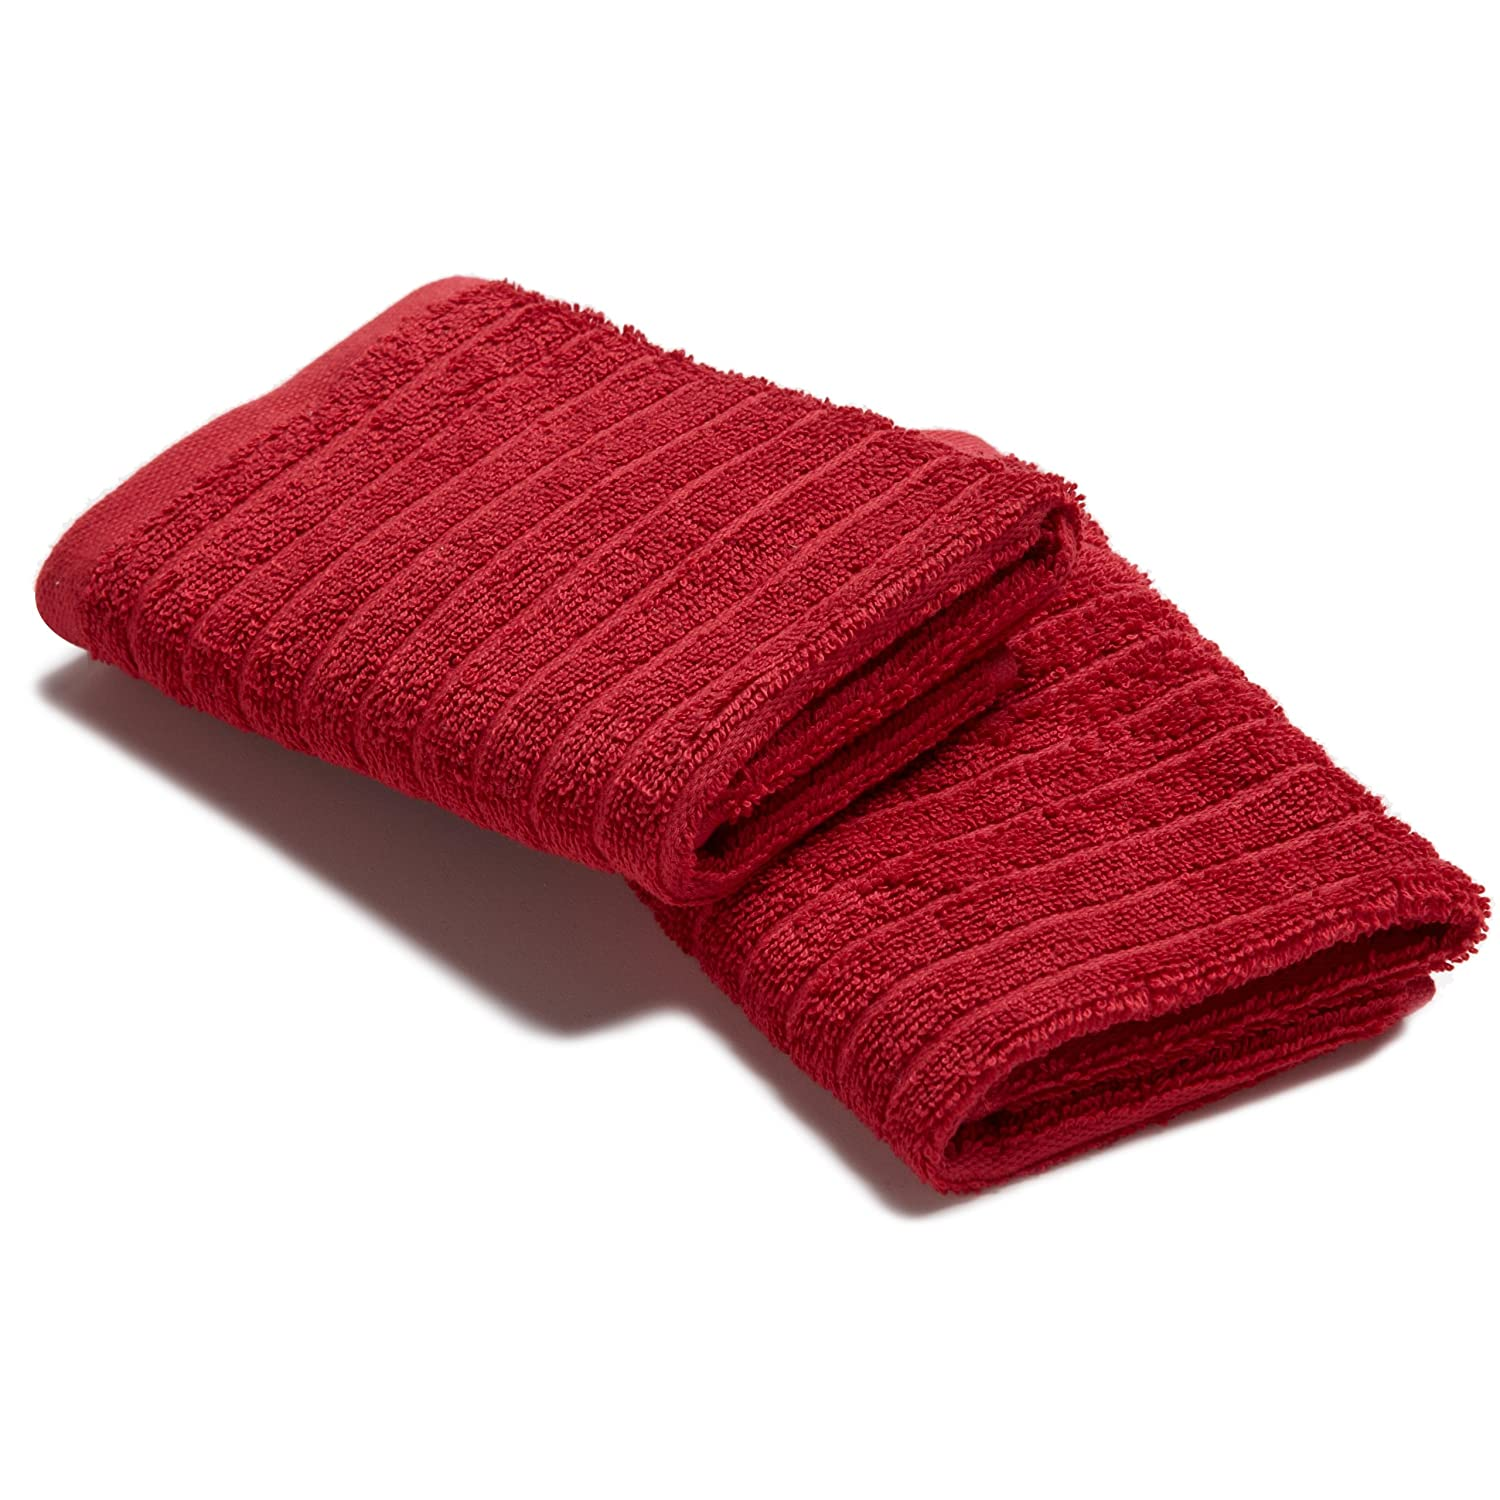 Danica Studio Aegean Wash Cloth, 12 by 12-Inch, Chili Red, Set of 2 - Made in turkey of 100-percent turkish long strand cotton